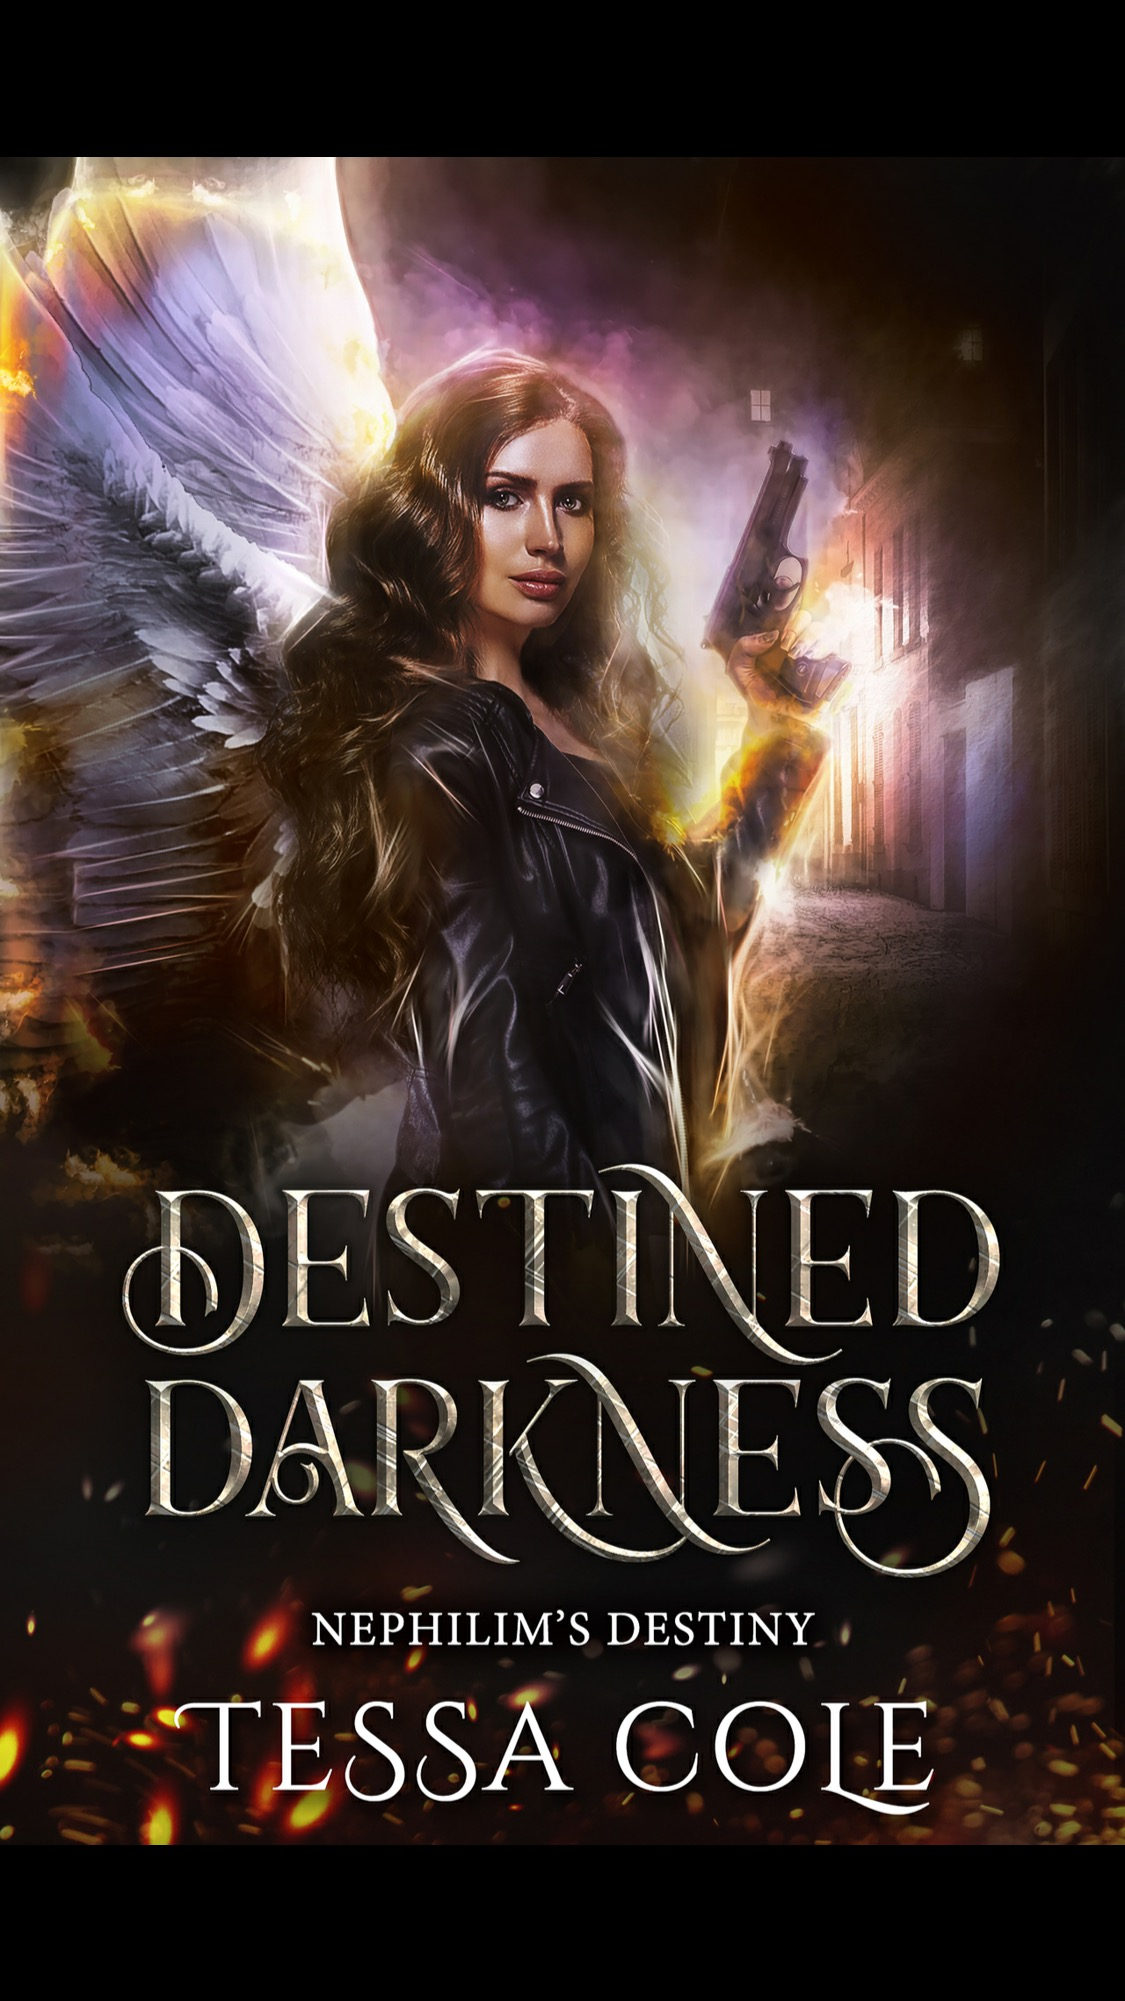 Destined Darkness by Tessa Cole - A Book Review: Wonderful start to a new series! #RH #PNR #WhyChoose #WouldRecommend #Angels